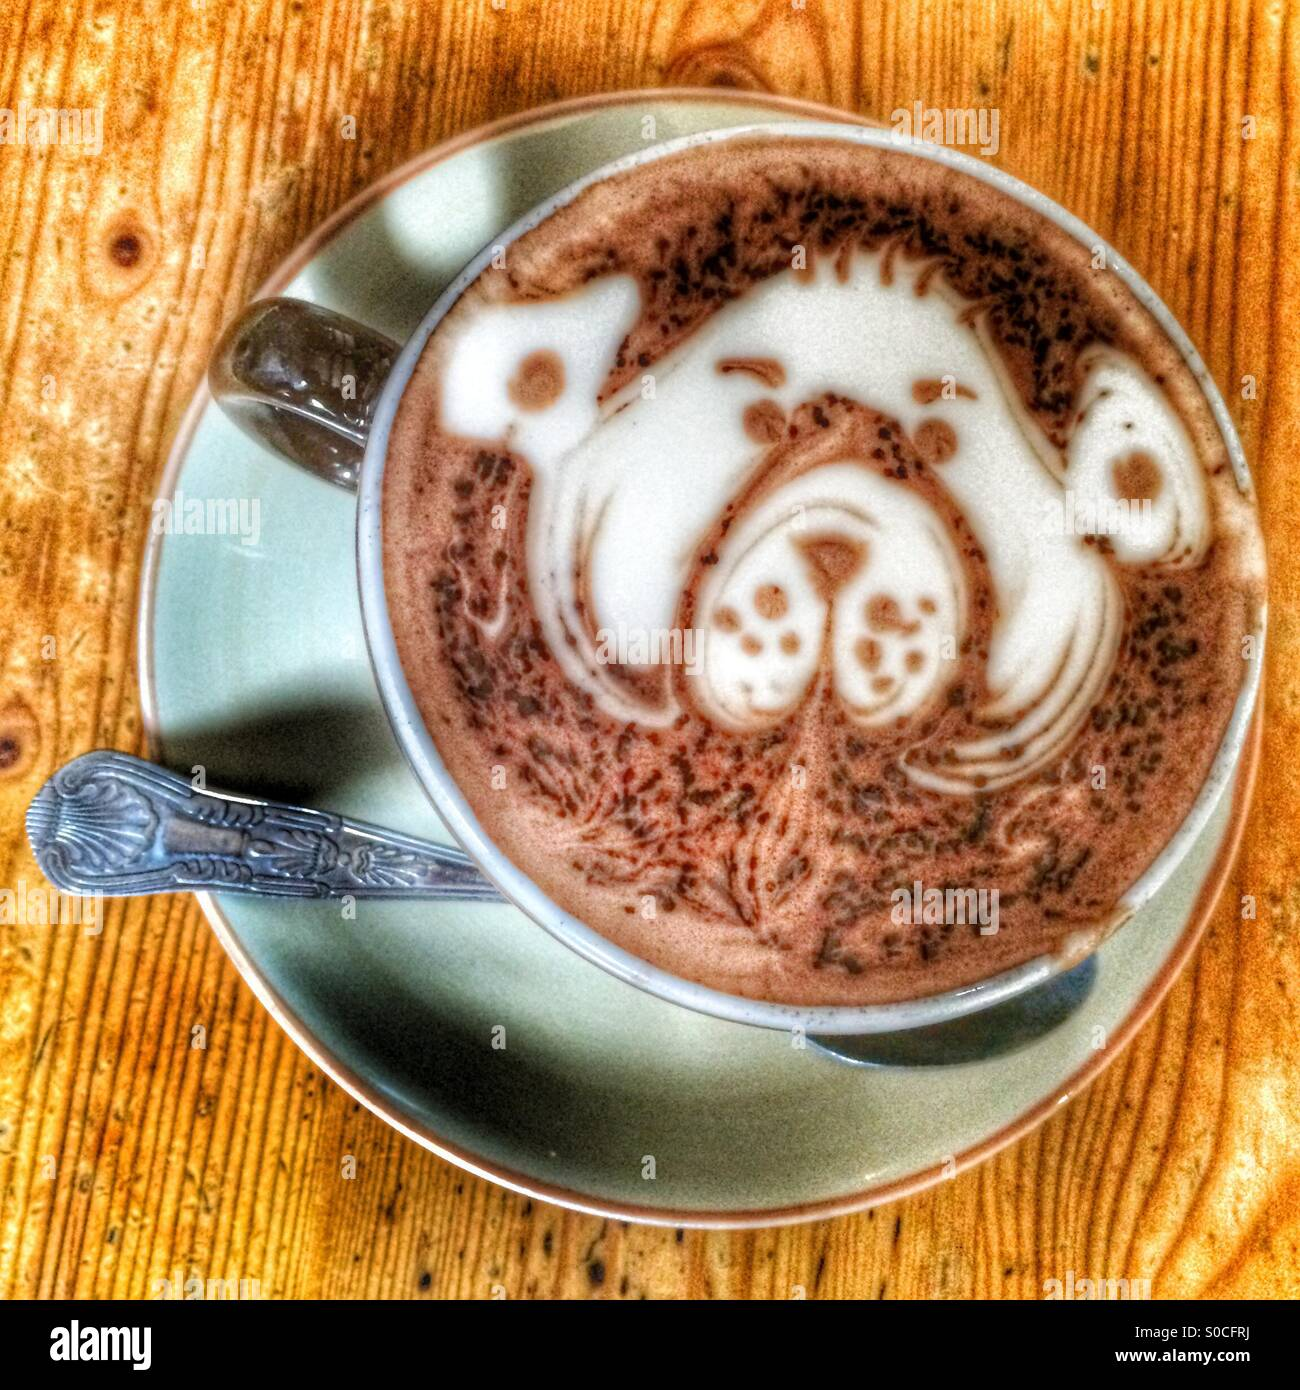 A cup of Hot Chocolate with a dogs face decoration Stock Photo ...